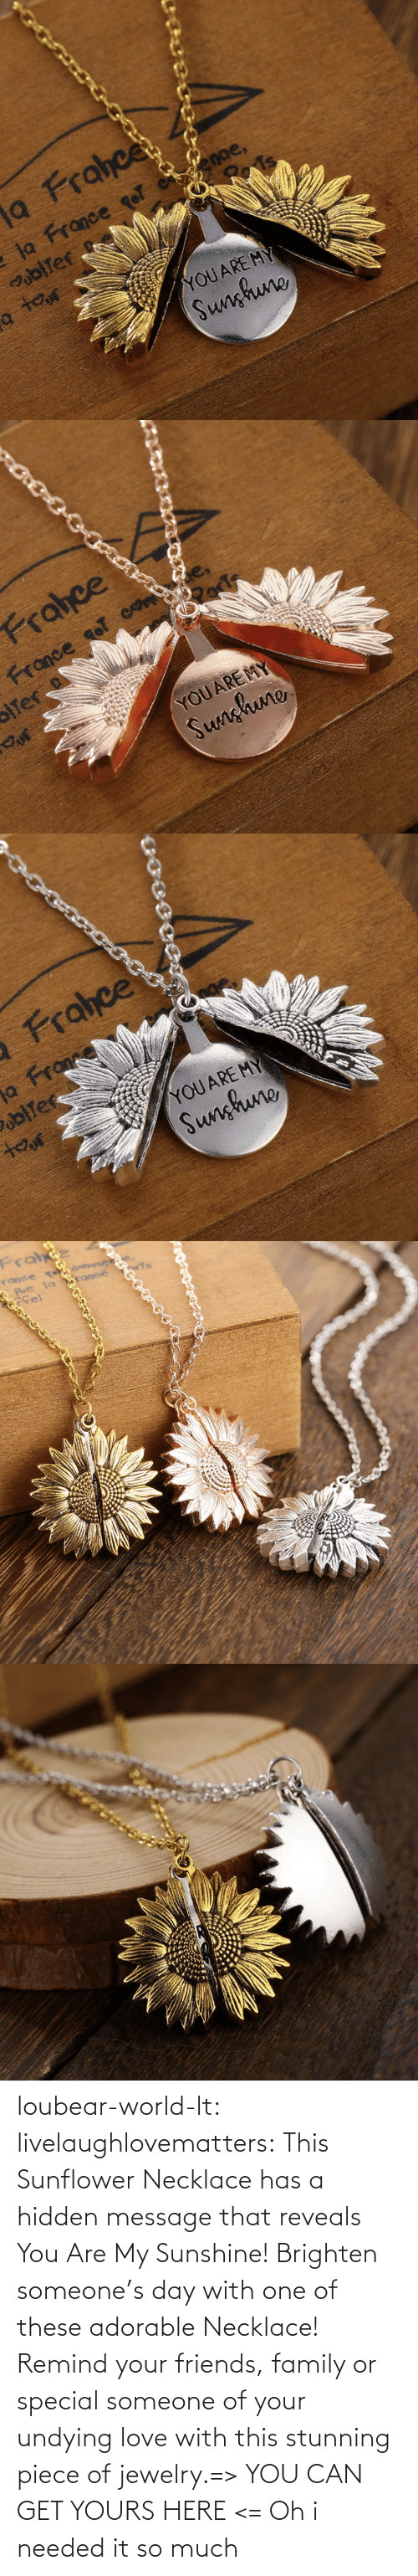 Can Get: loubear-world-lt:  livelaughlovematters:  This Sunflower Necklace has a hidden message that reveals You Are My Sunshine! Brighten someone's day with one of these adorable Necklace! Remind your friends, family or special someone of your undying love with this stunning piece of jewelry.=> YOU CAN GET YOURS HERE <=   Oh i needed it so much